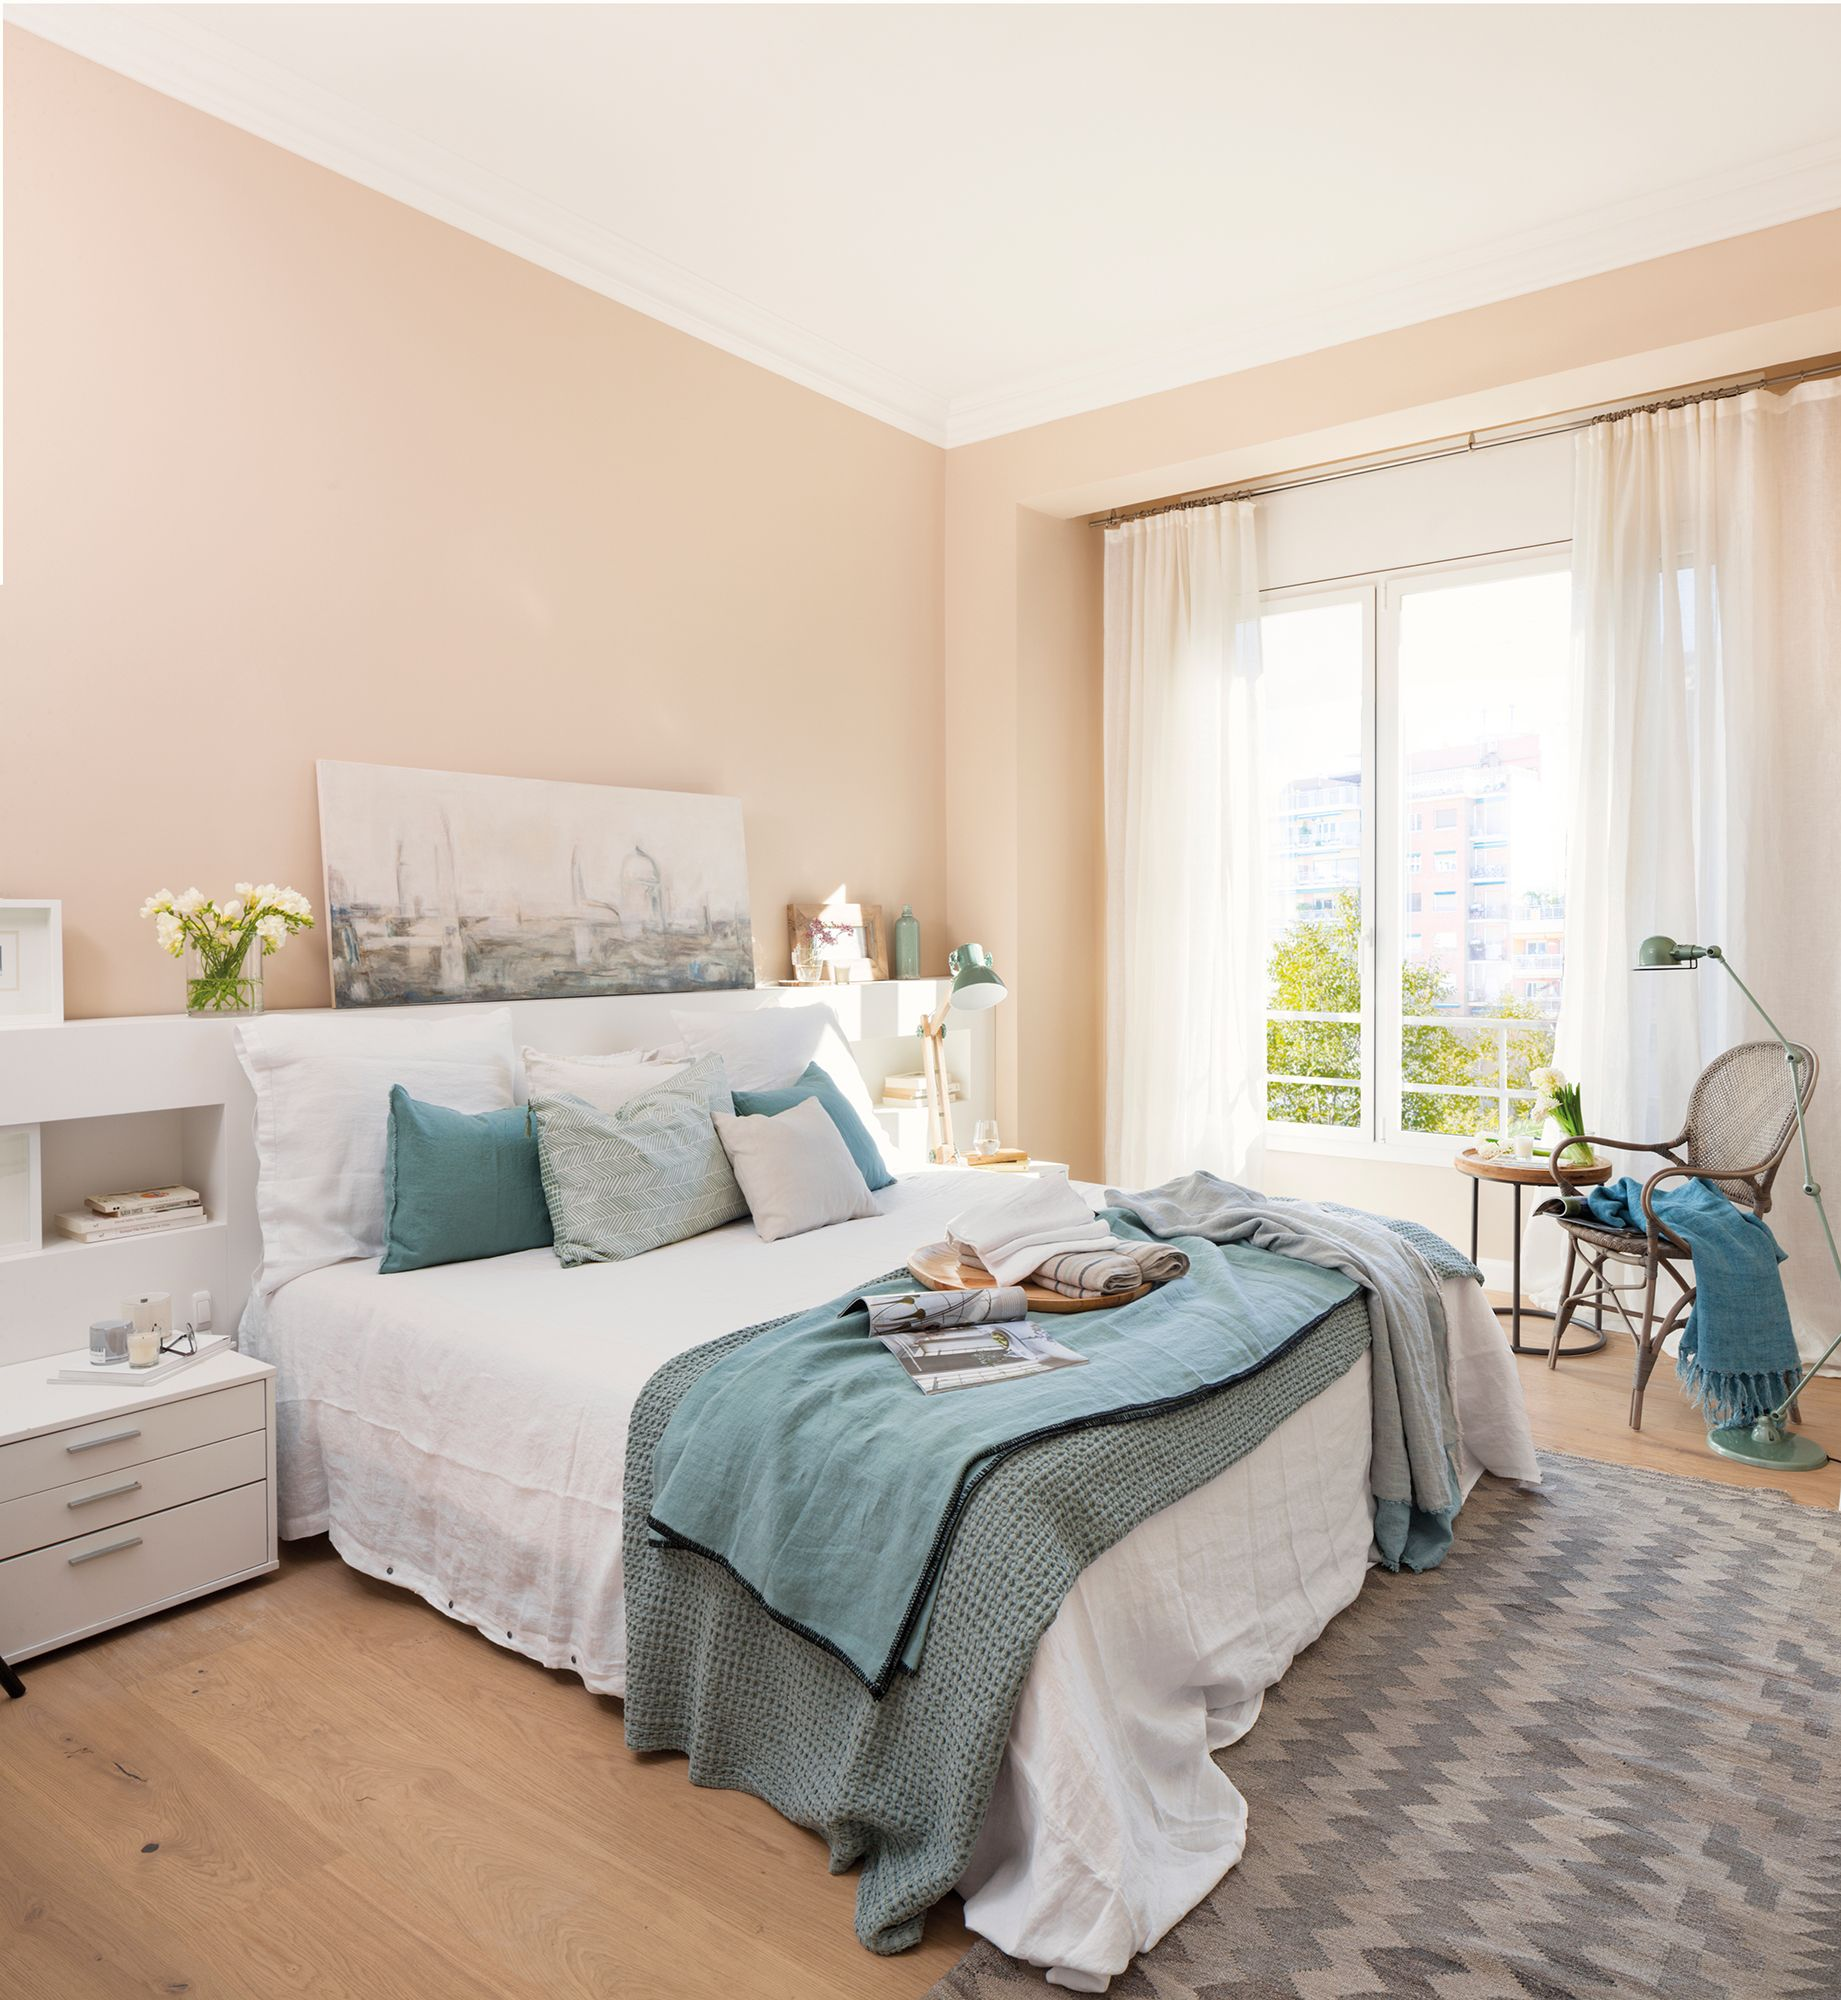 Color Ideal Para Dormitorio 49 Una Pisada Más Cálida En 2019 Decoracion